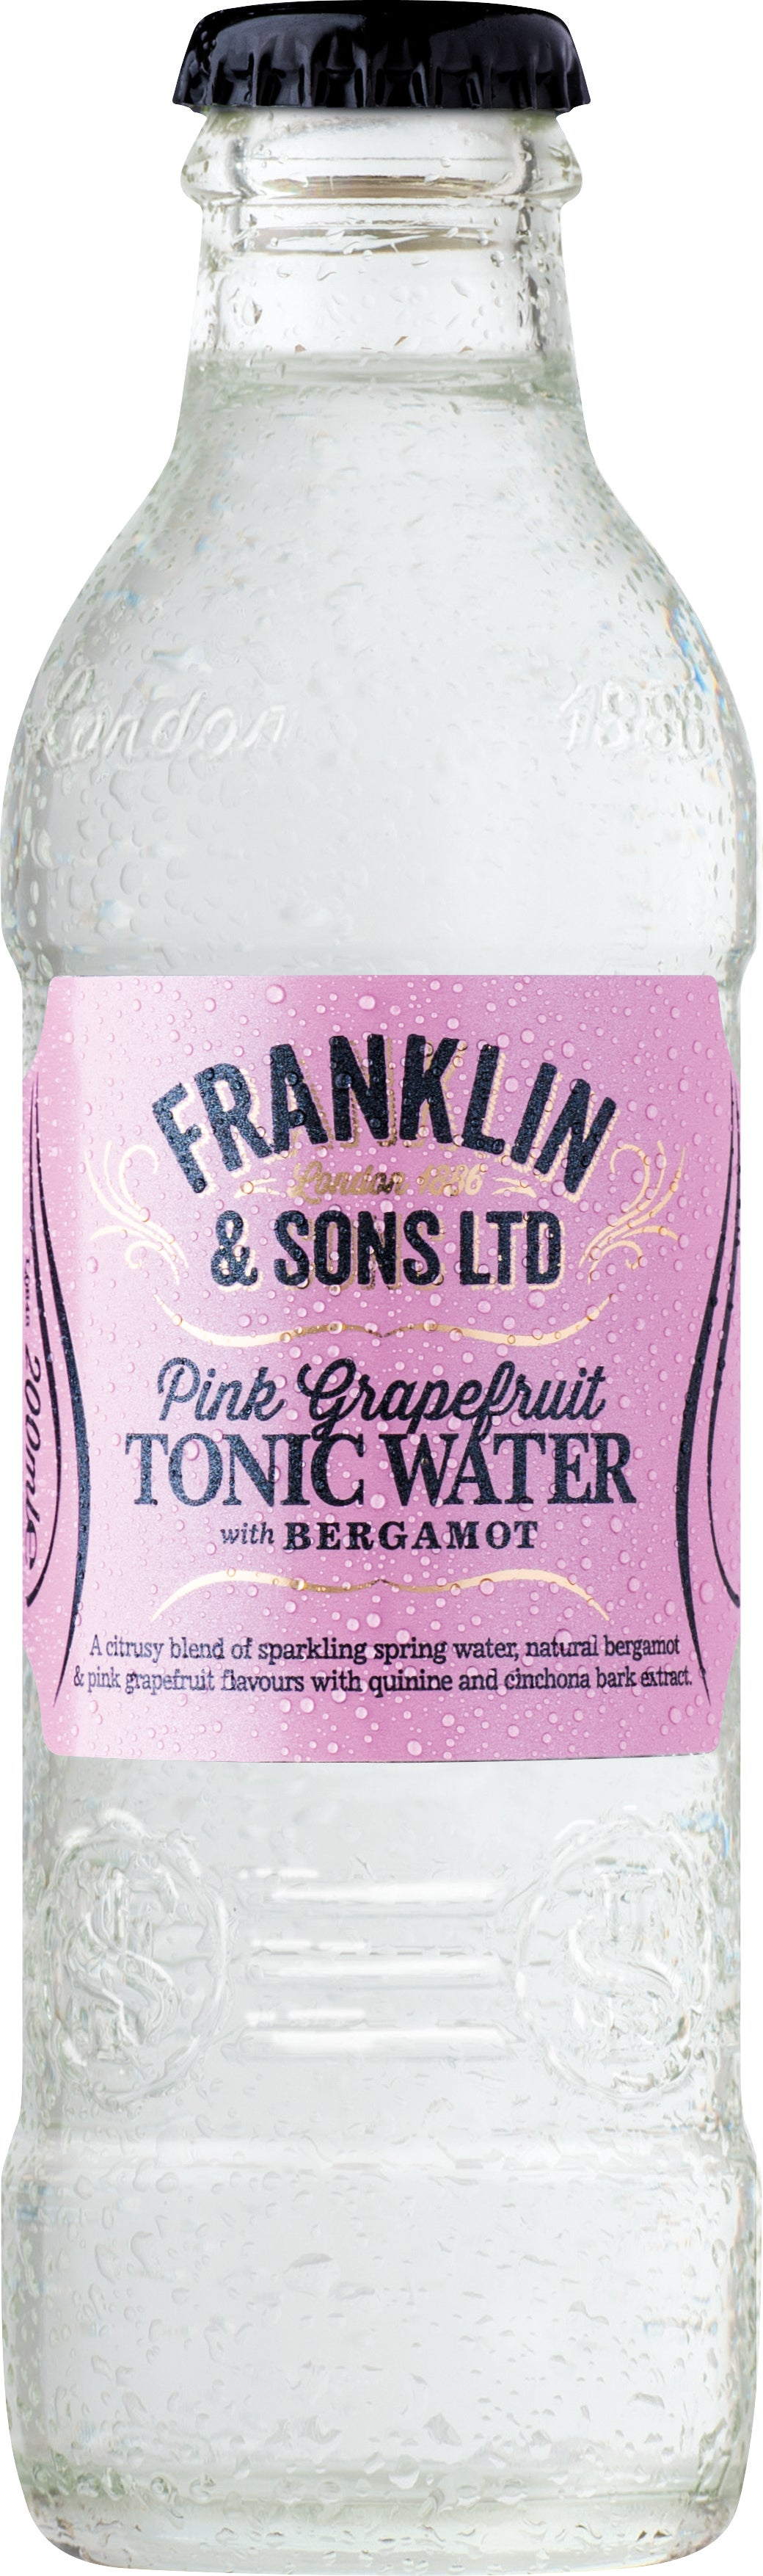 Franklin & Sons Pink Grapefruit Tonic Water (24 x 200ml bottles)